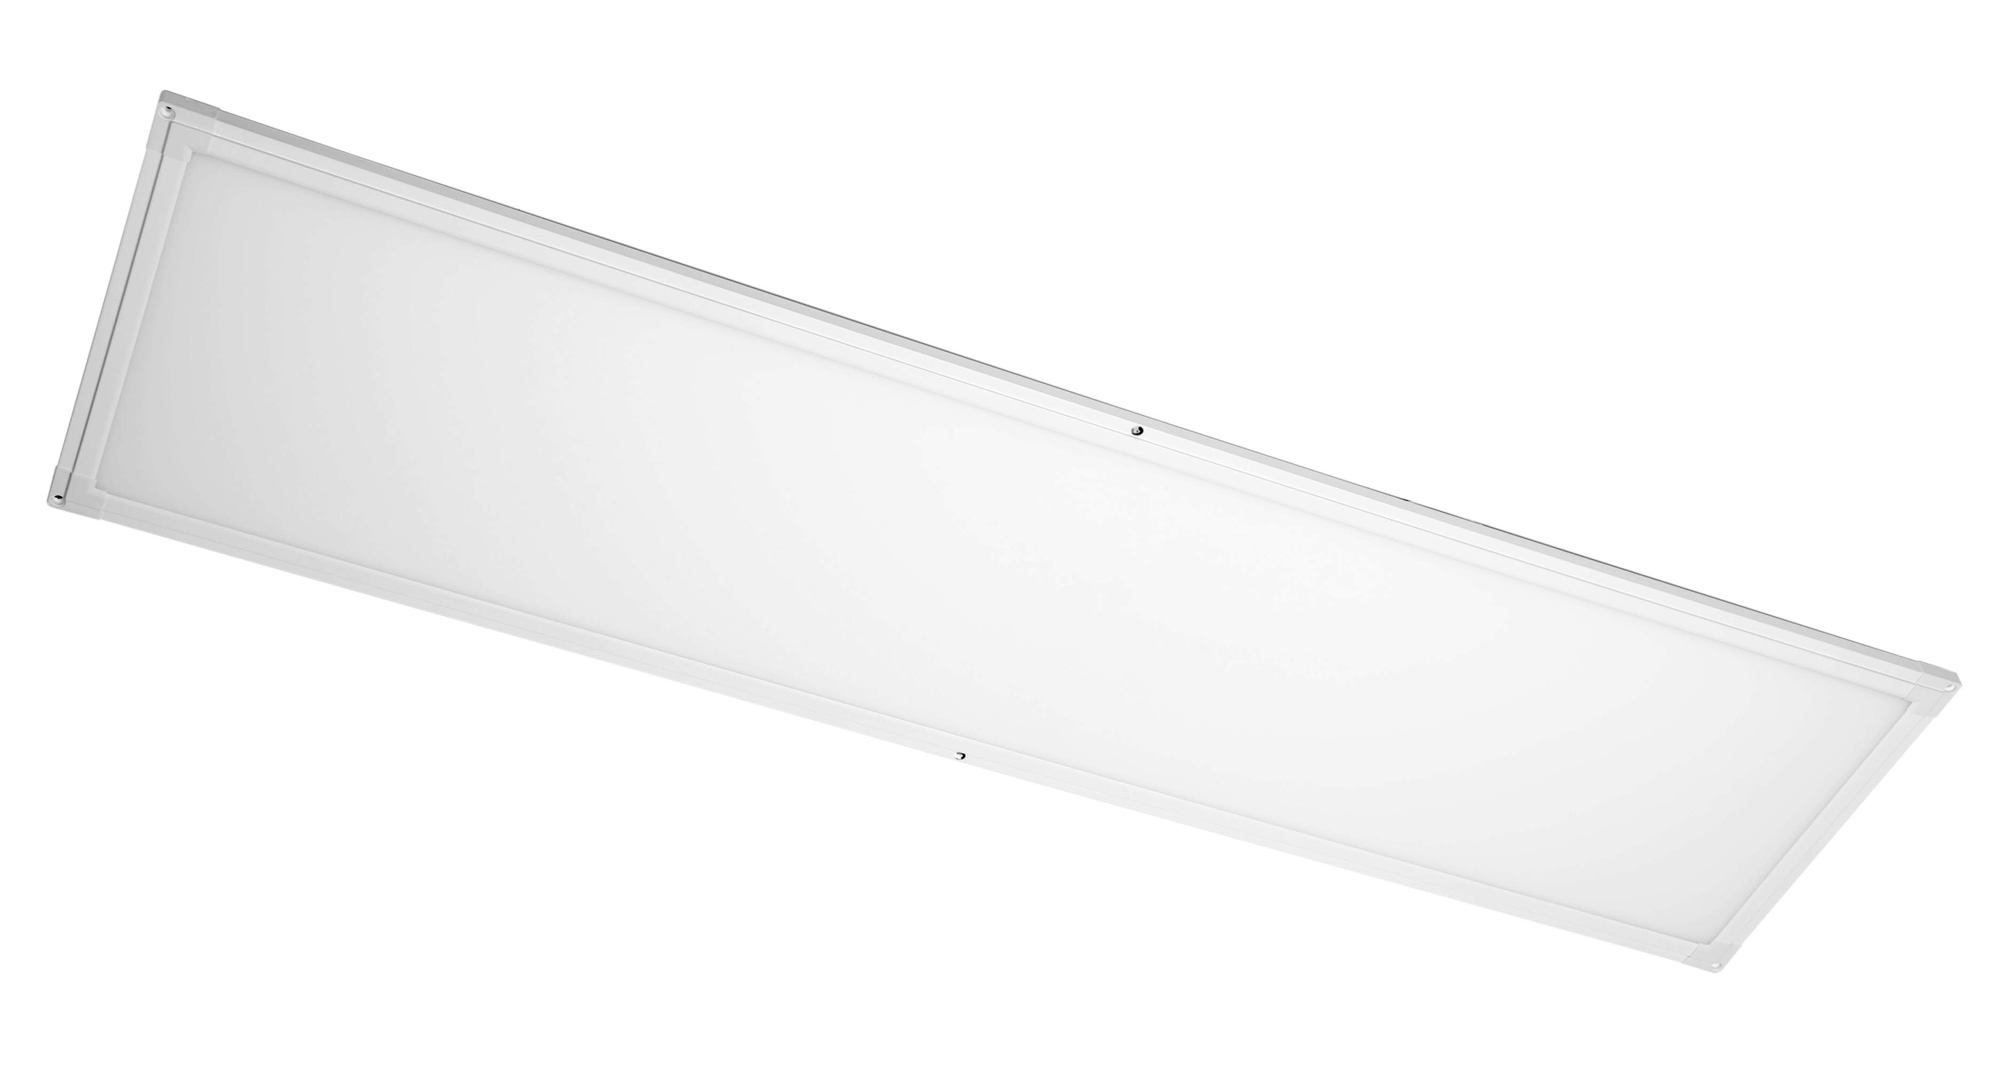 KP-A249 : LED PANEL LIGHT